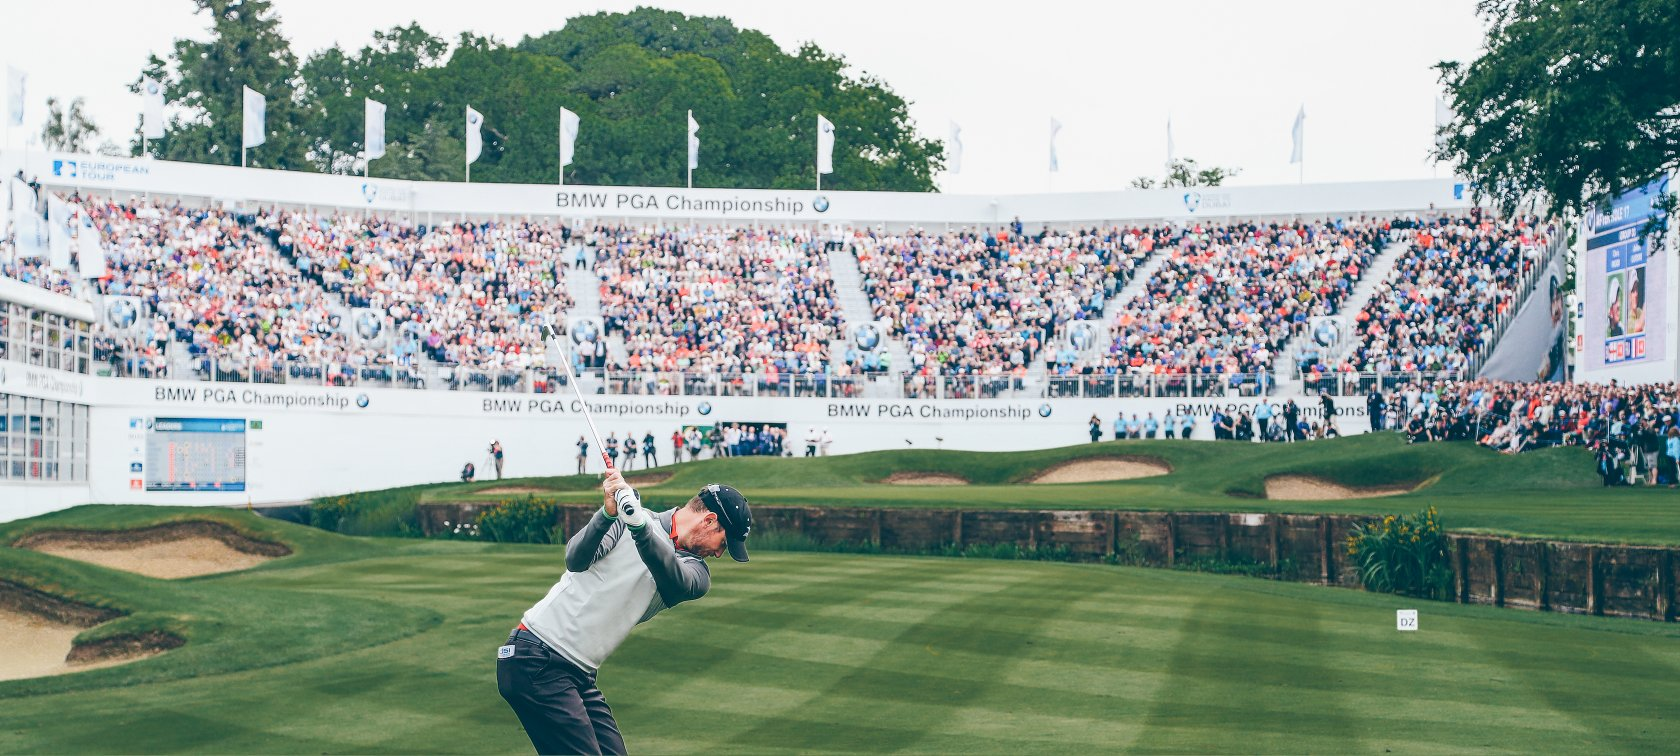 2018 Bmw Pga Championship  New Car Release Date And